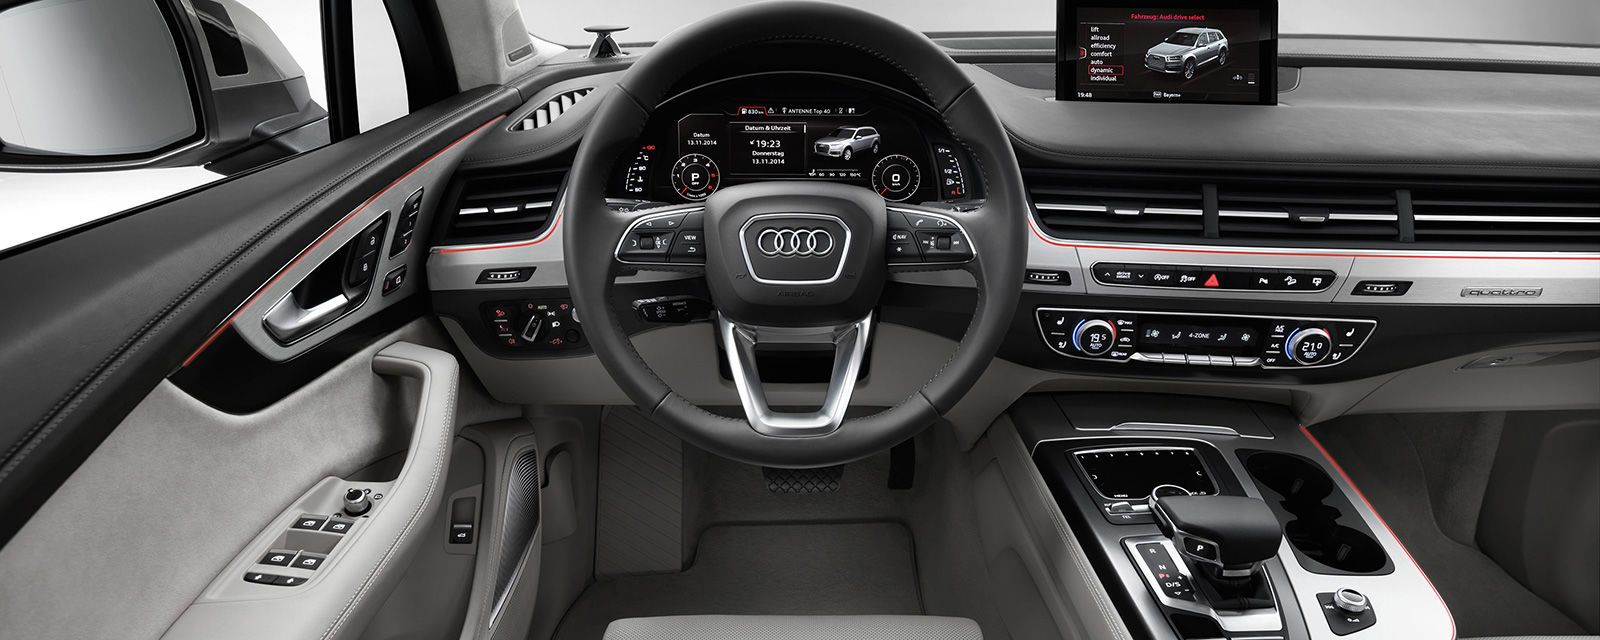 Top 10 Cars With The Most Luxurious Interiors Carwow